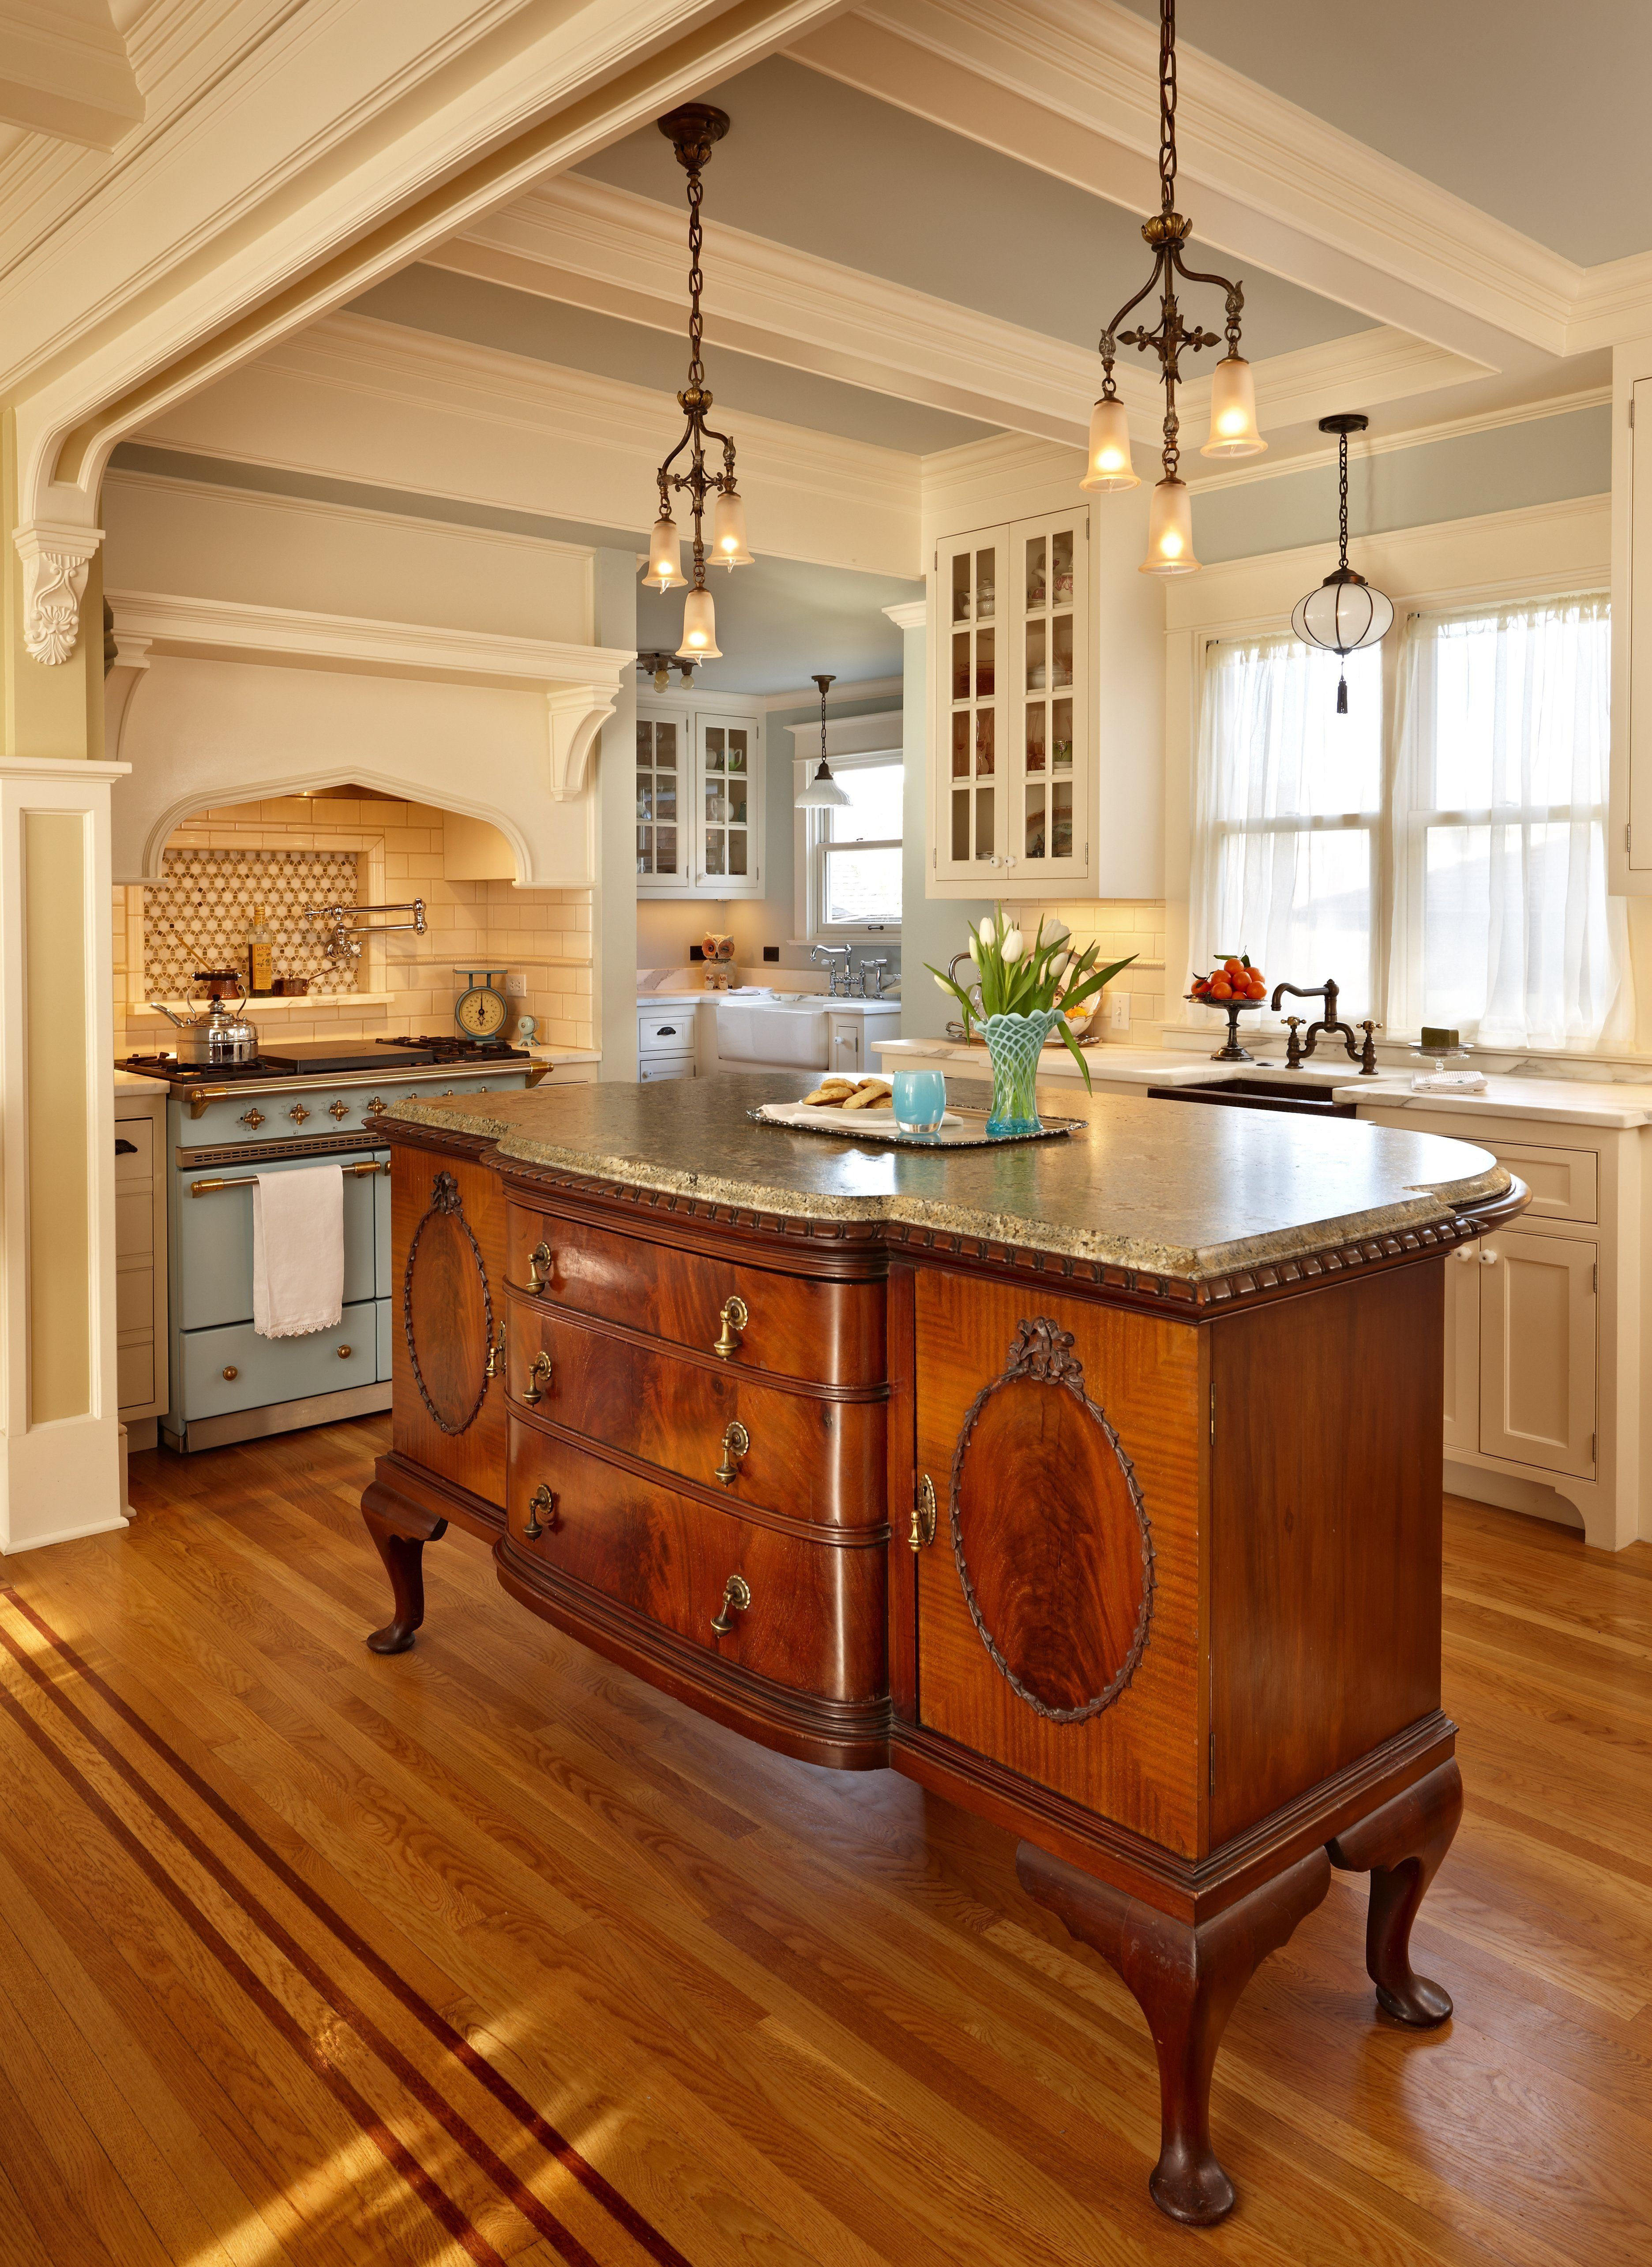 Best Of French Farmhouse Kitchen island The Elegant as